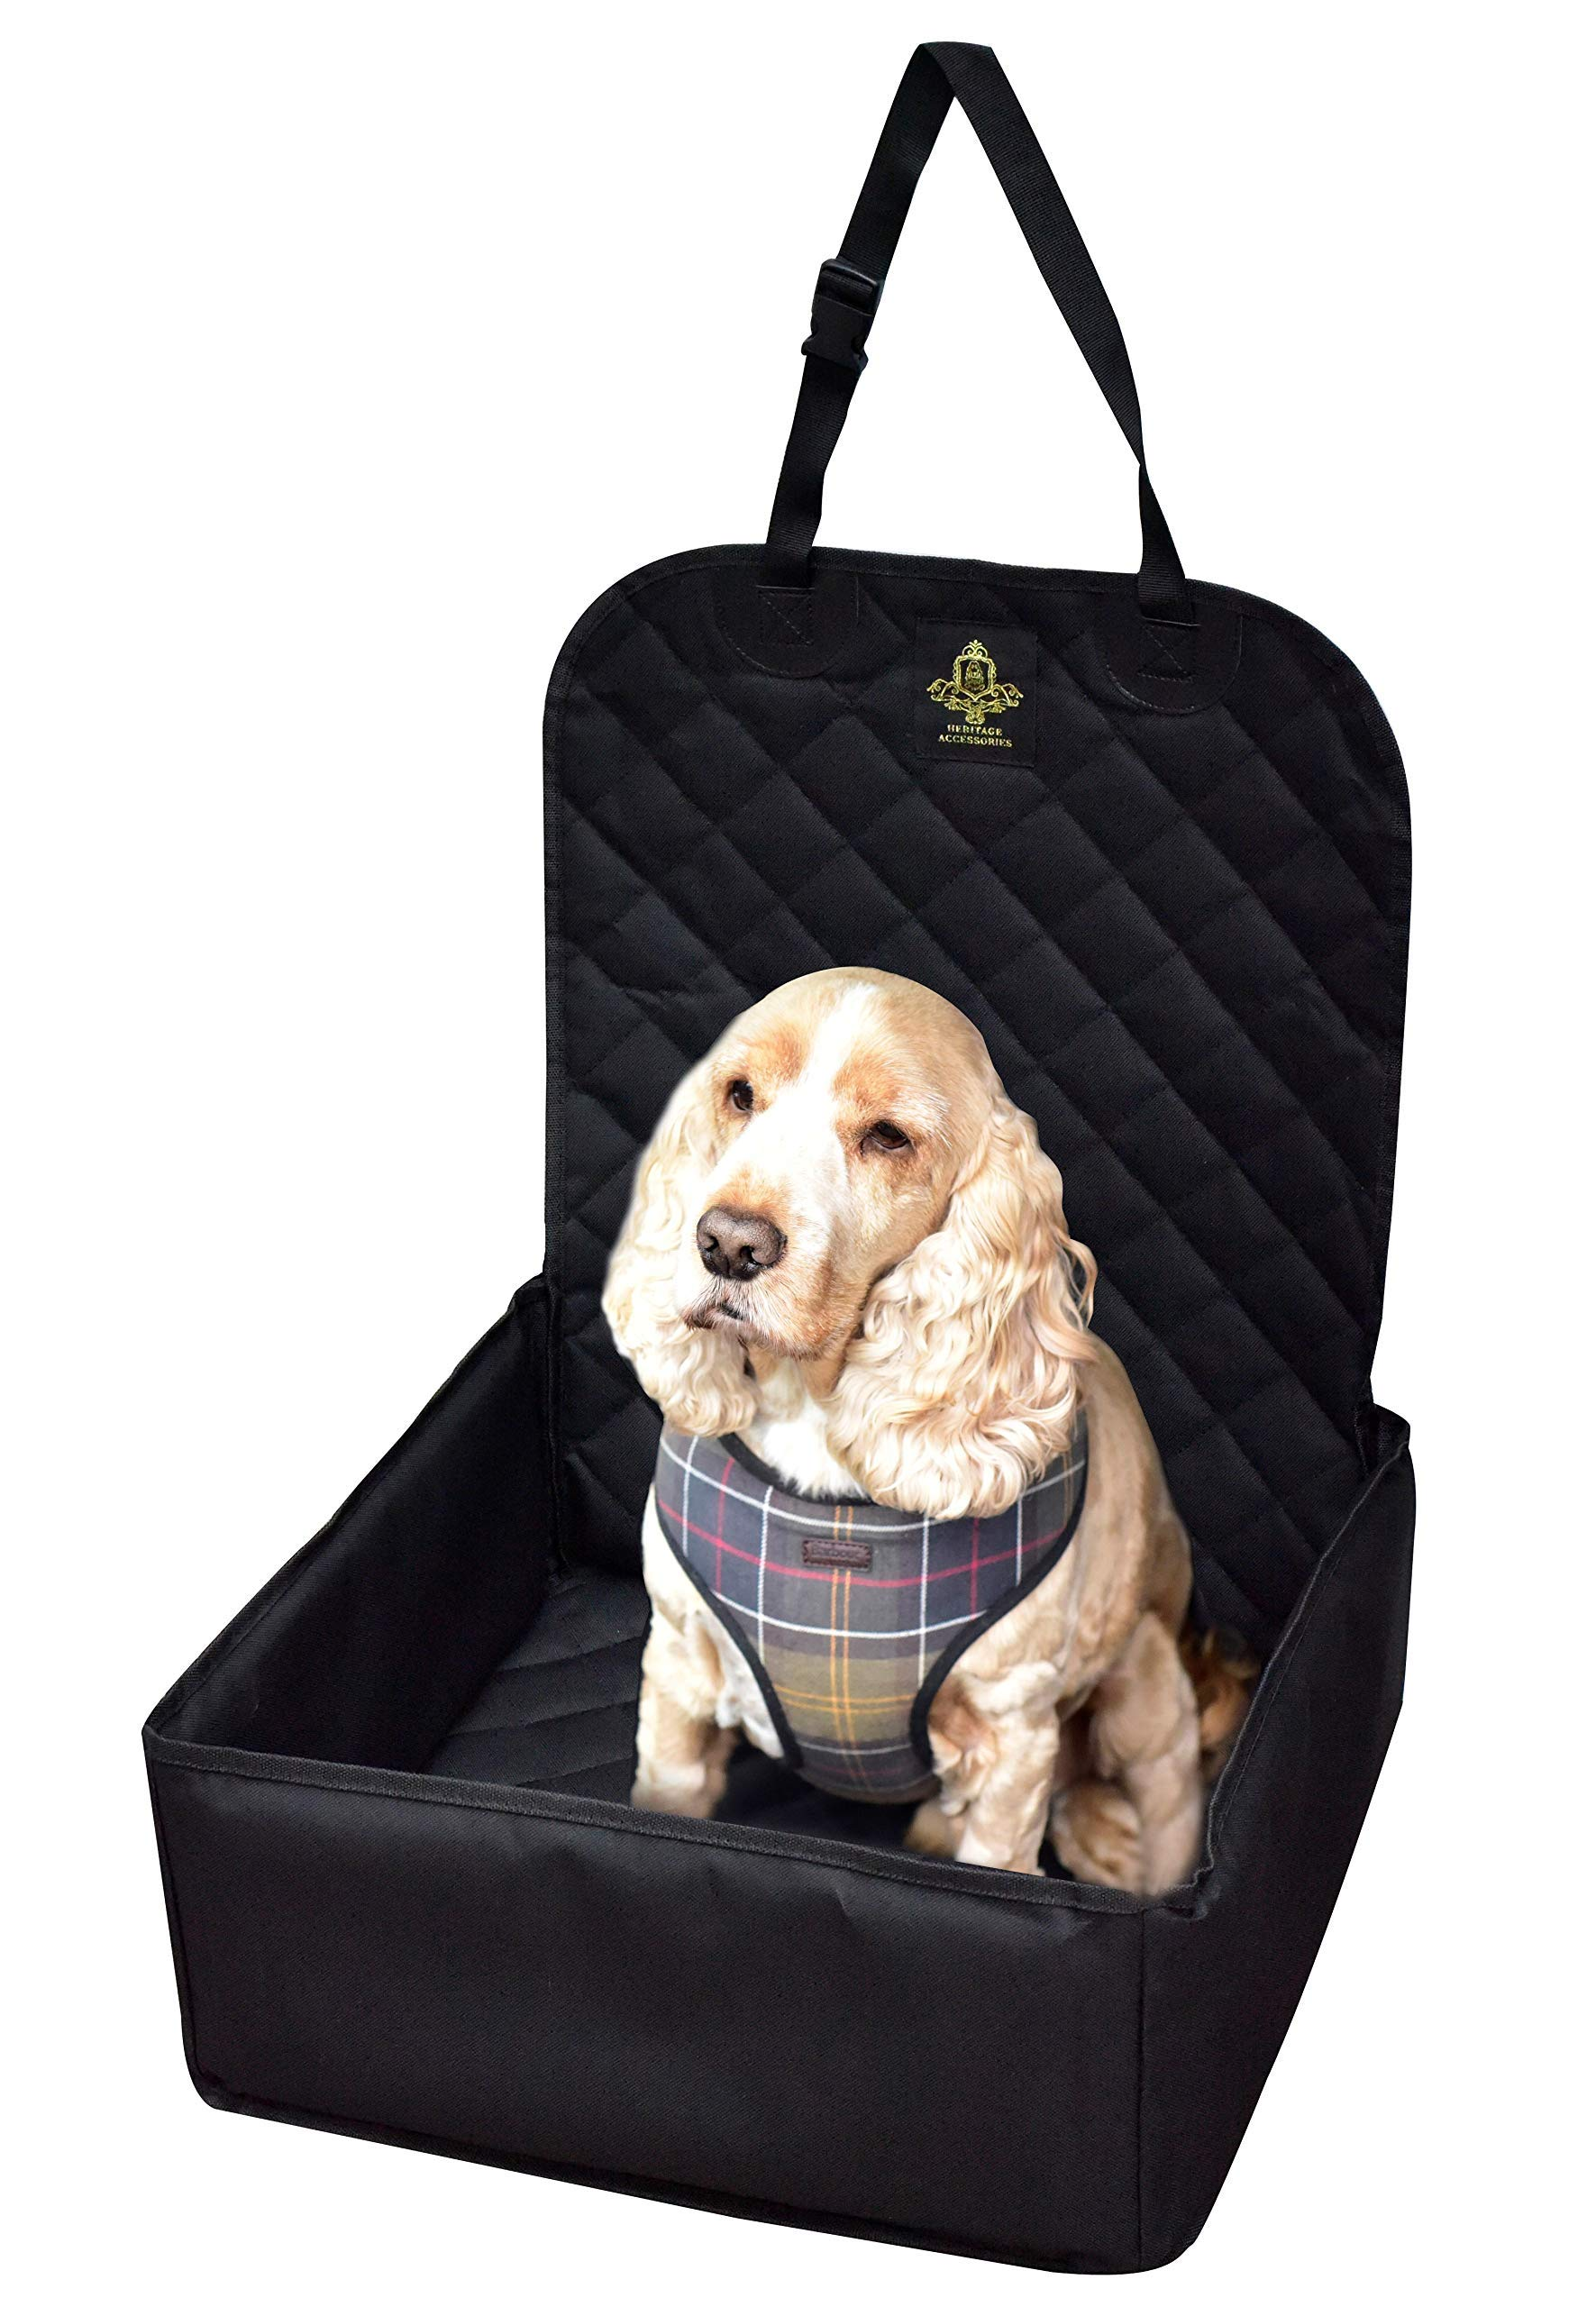 Dog Car Seat with Safety Harness Seat Belt – Pet Waterproof Travel Dog Car Seat Protector Cover Car Accessories